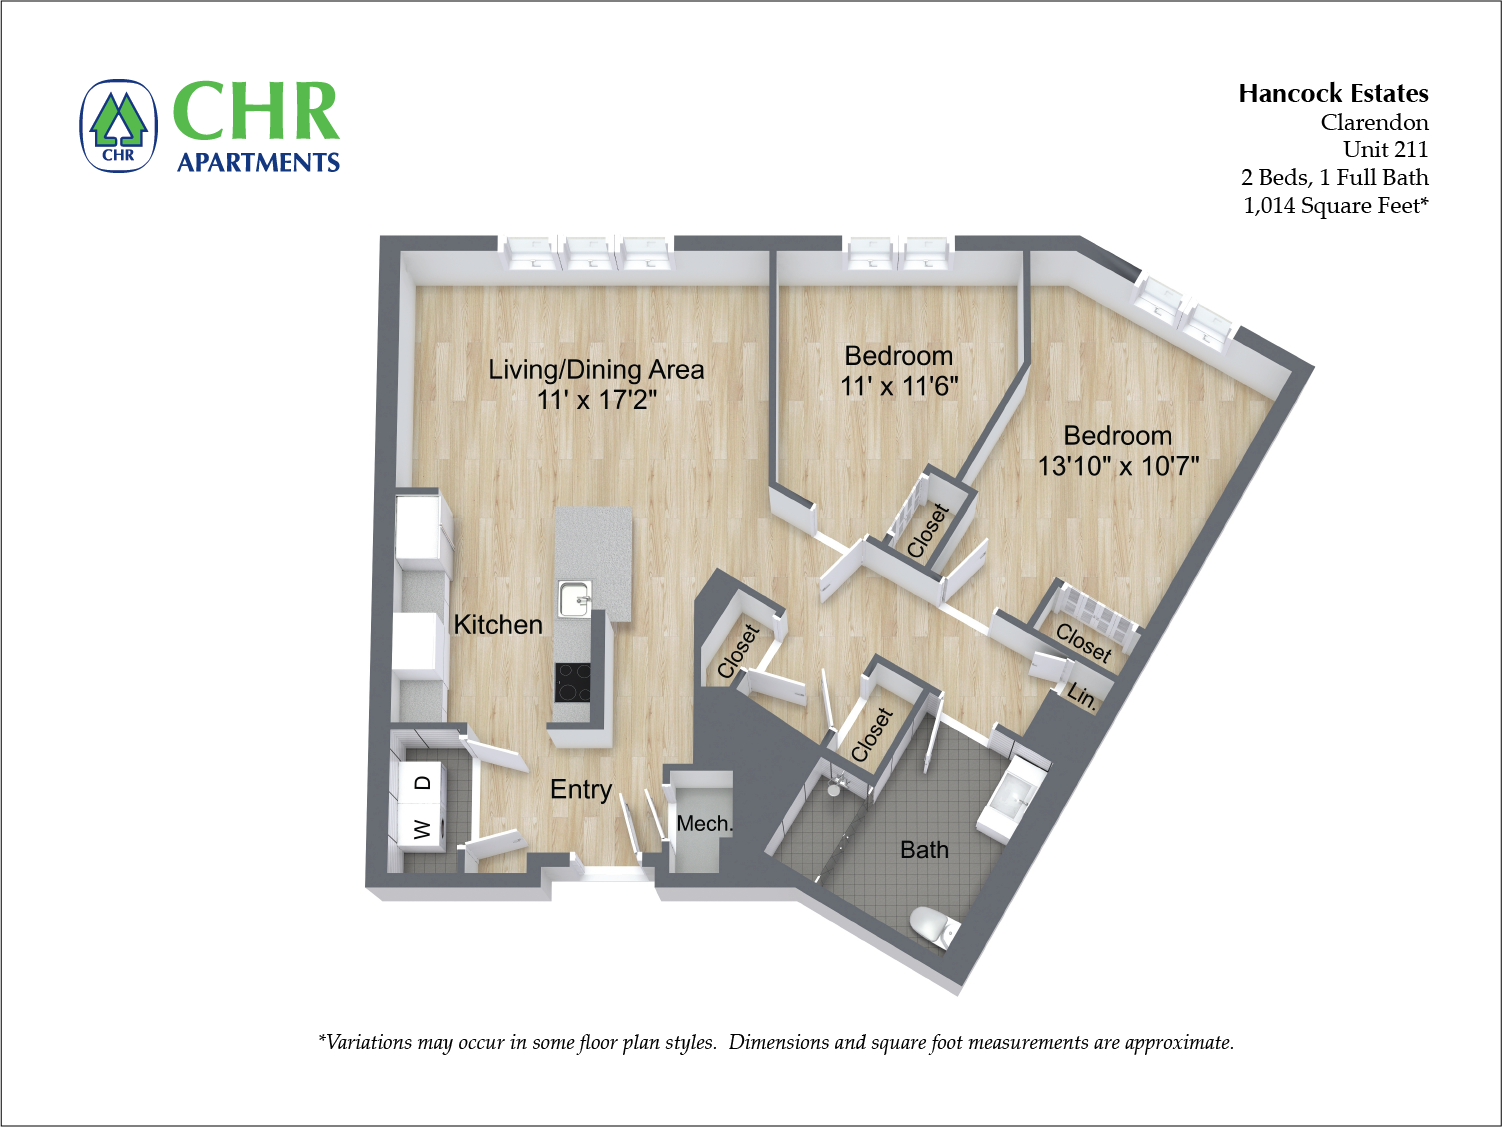 Click to view 2 BR 1 BA floor plan gallery